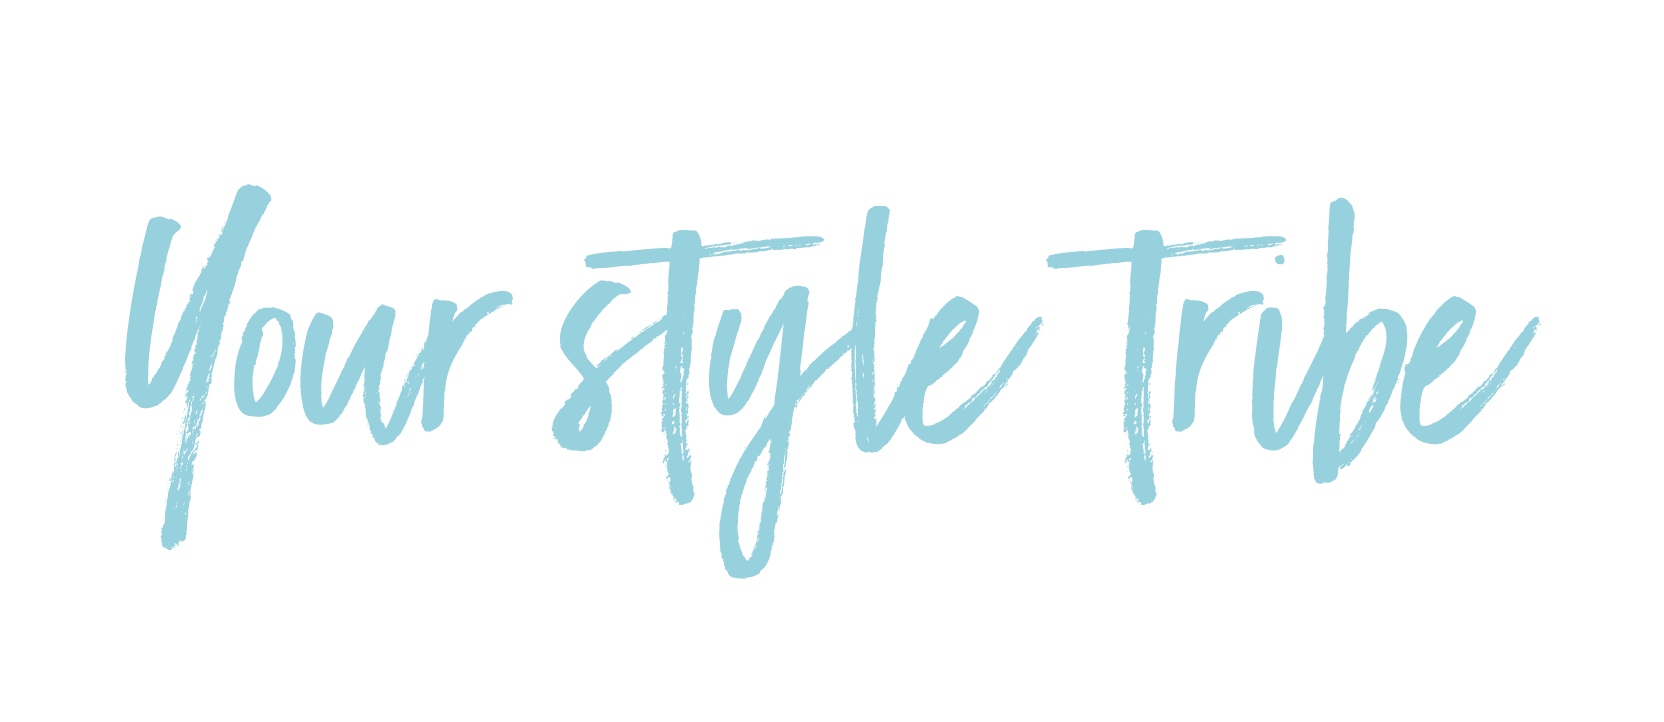 Your style tribe title